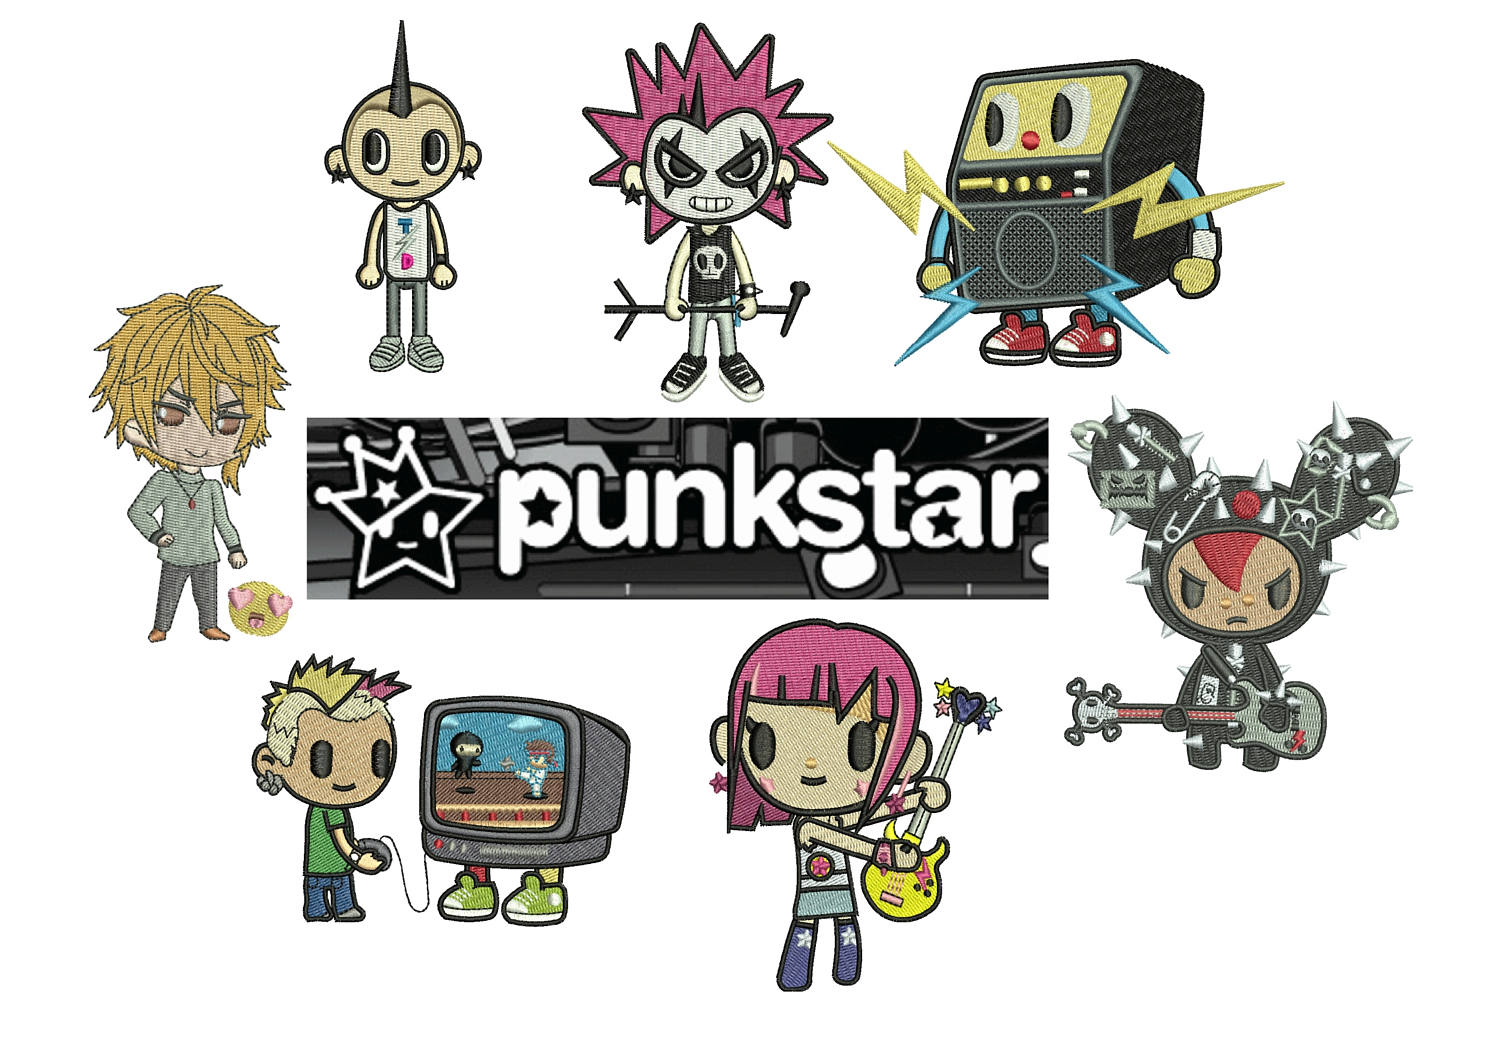 50% off on Tokidoki machine embroidery designs - 7 individual characters for 4in hoop size - resizable with a free software - Set 1 of 5.